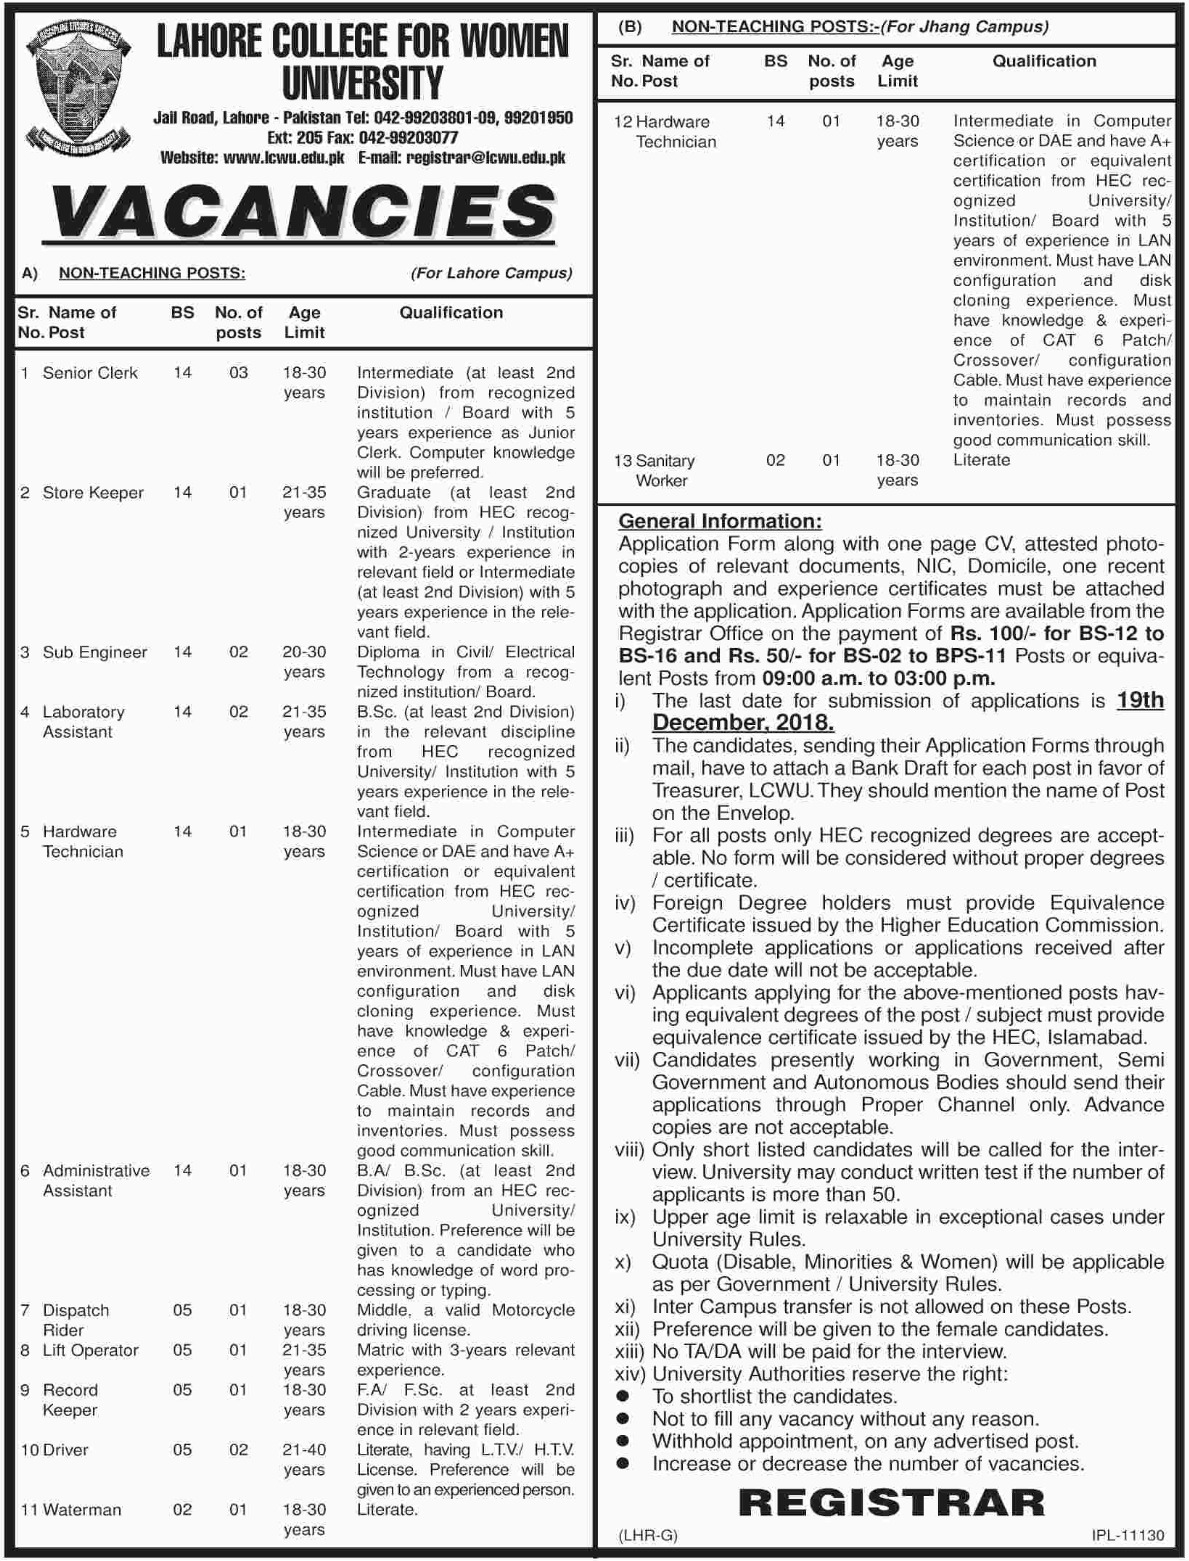 LCWU Jobs 2018 Lahore College for Women University